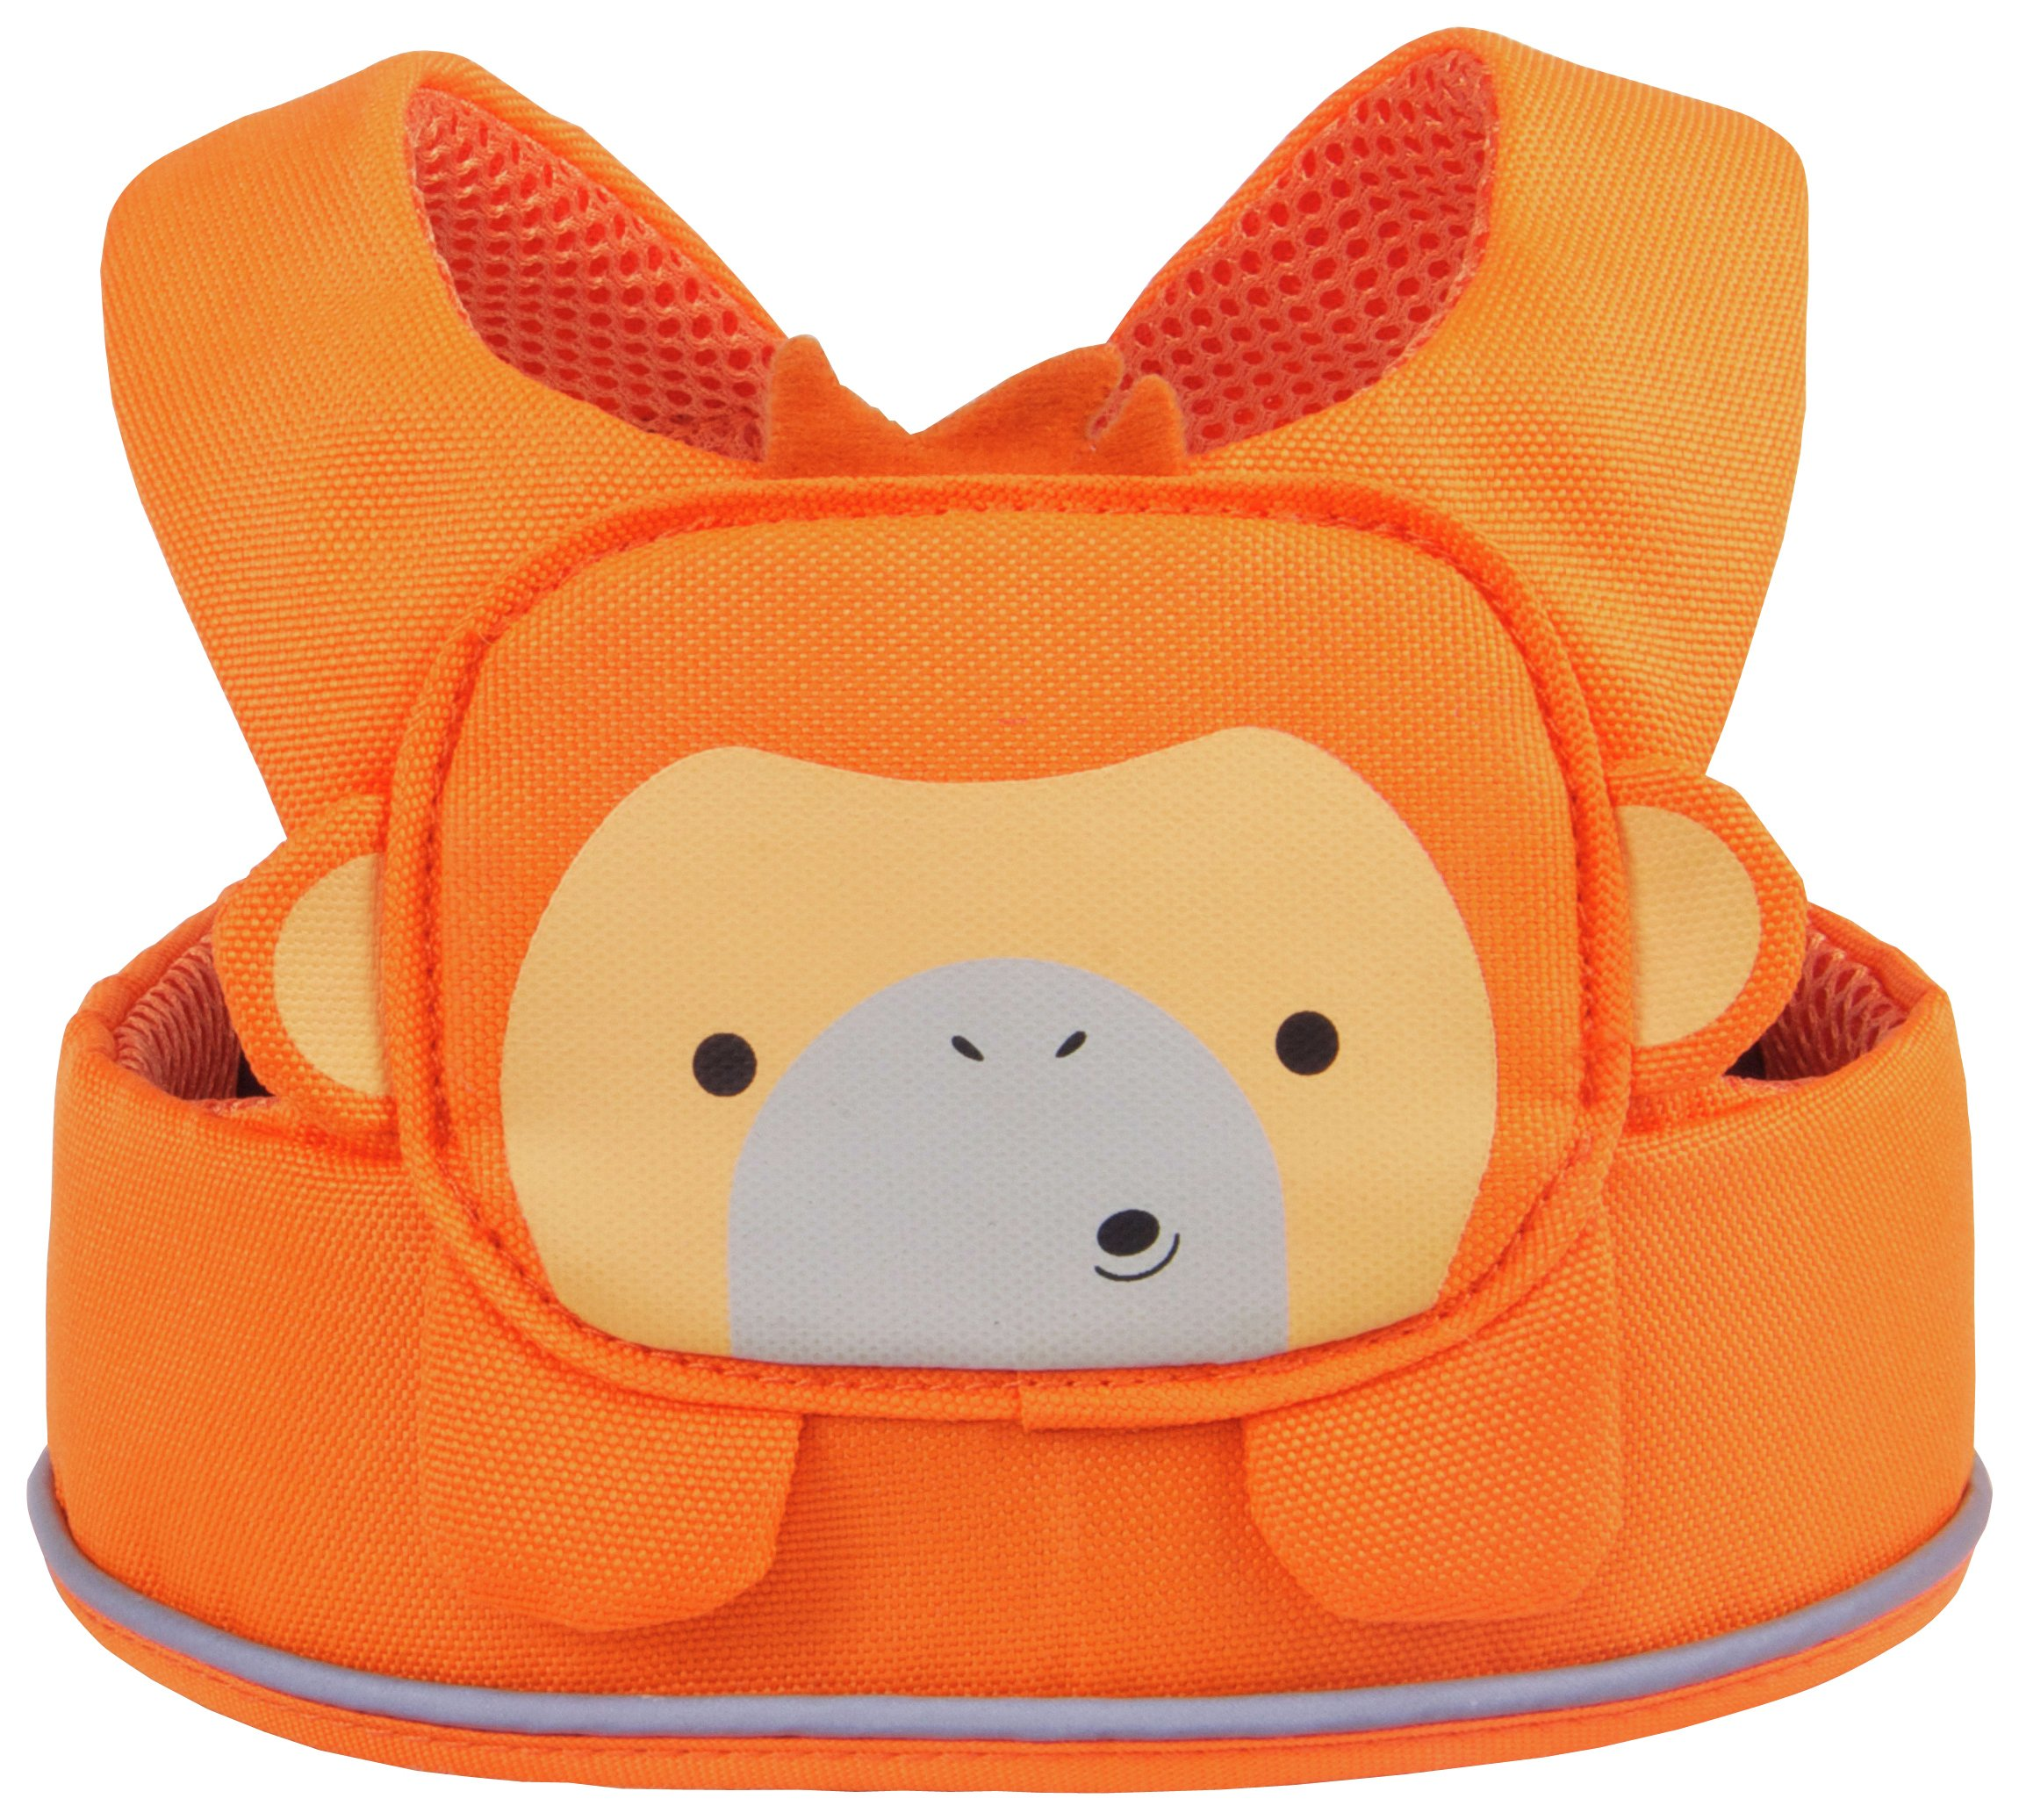 Image of Trunki Toddlepak Reins - Orange Monkey